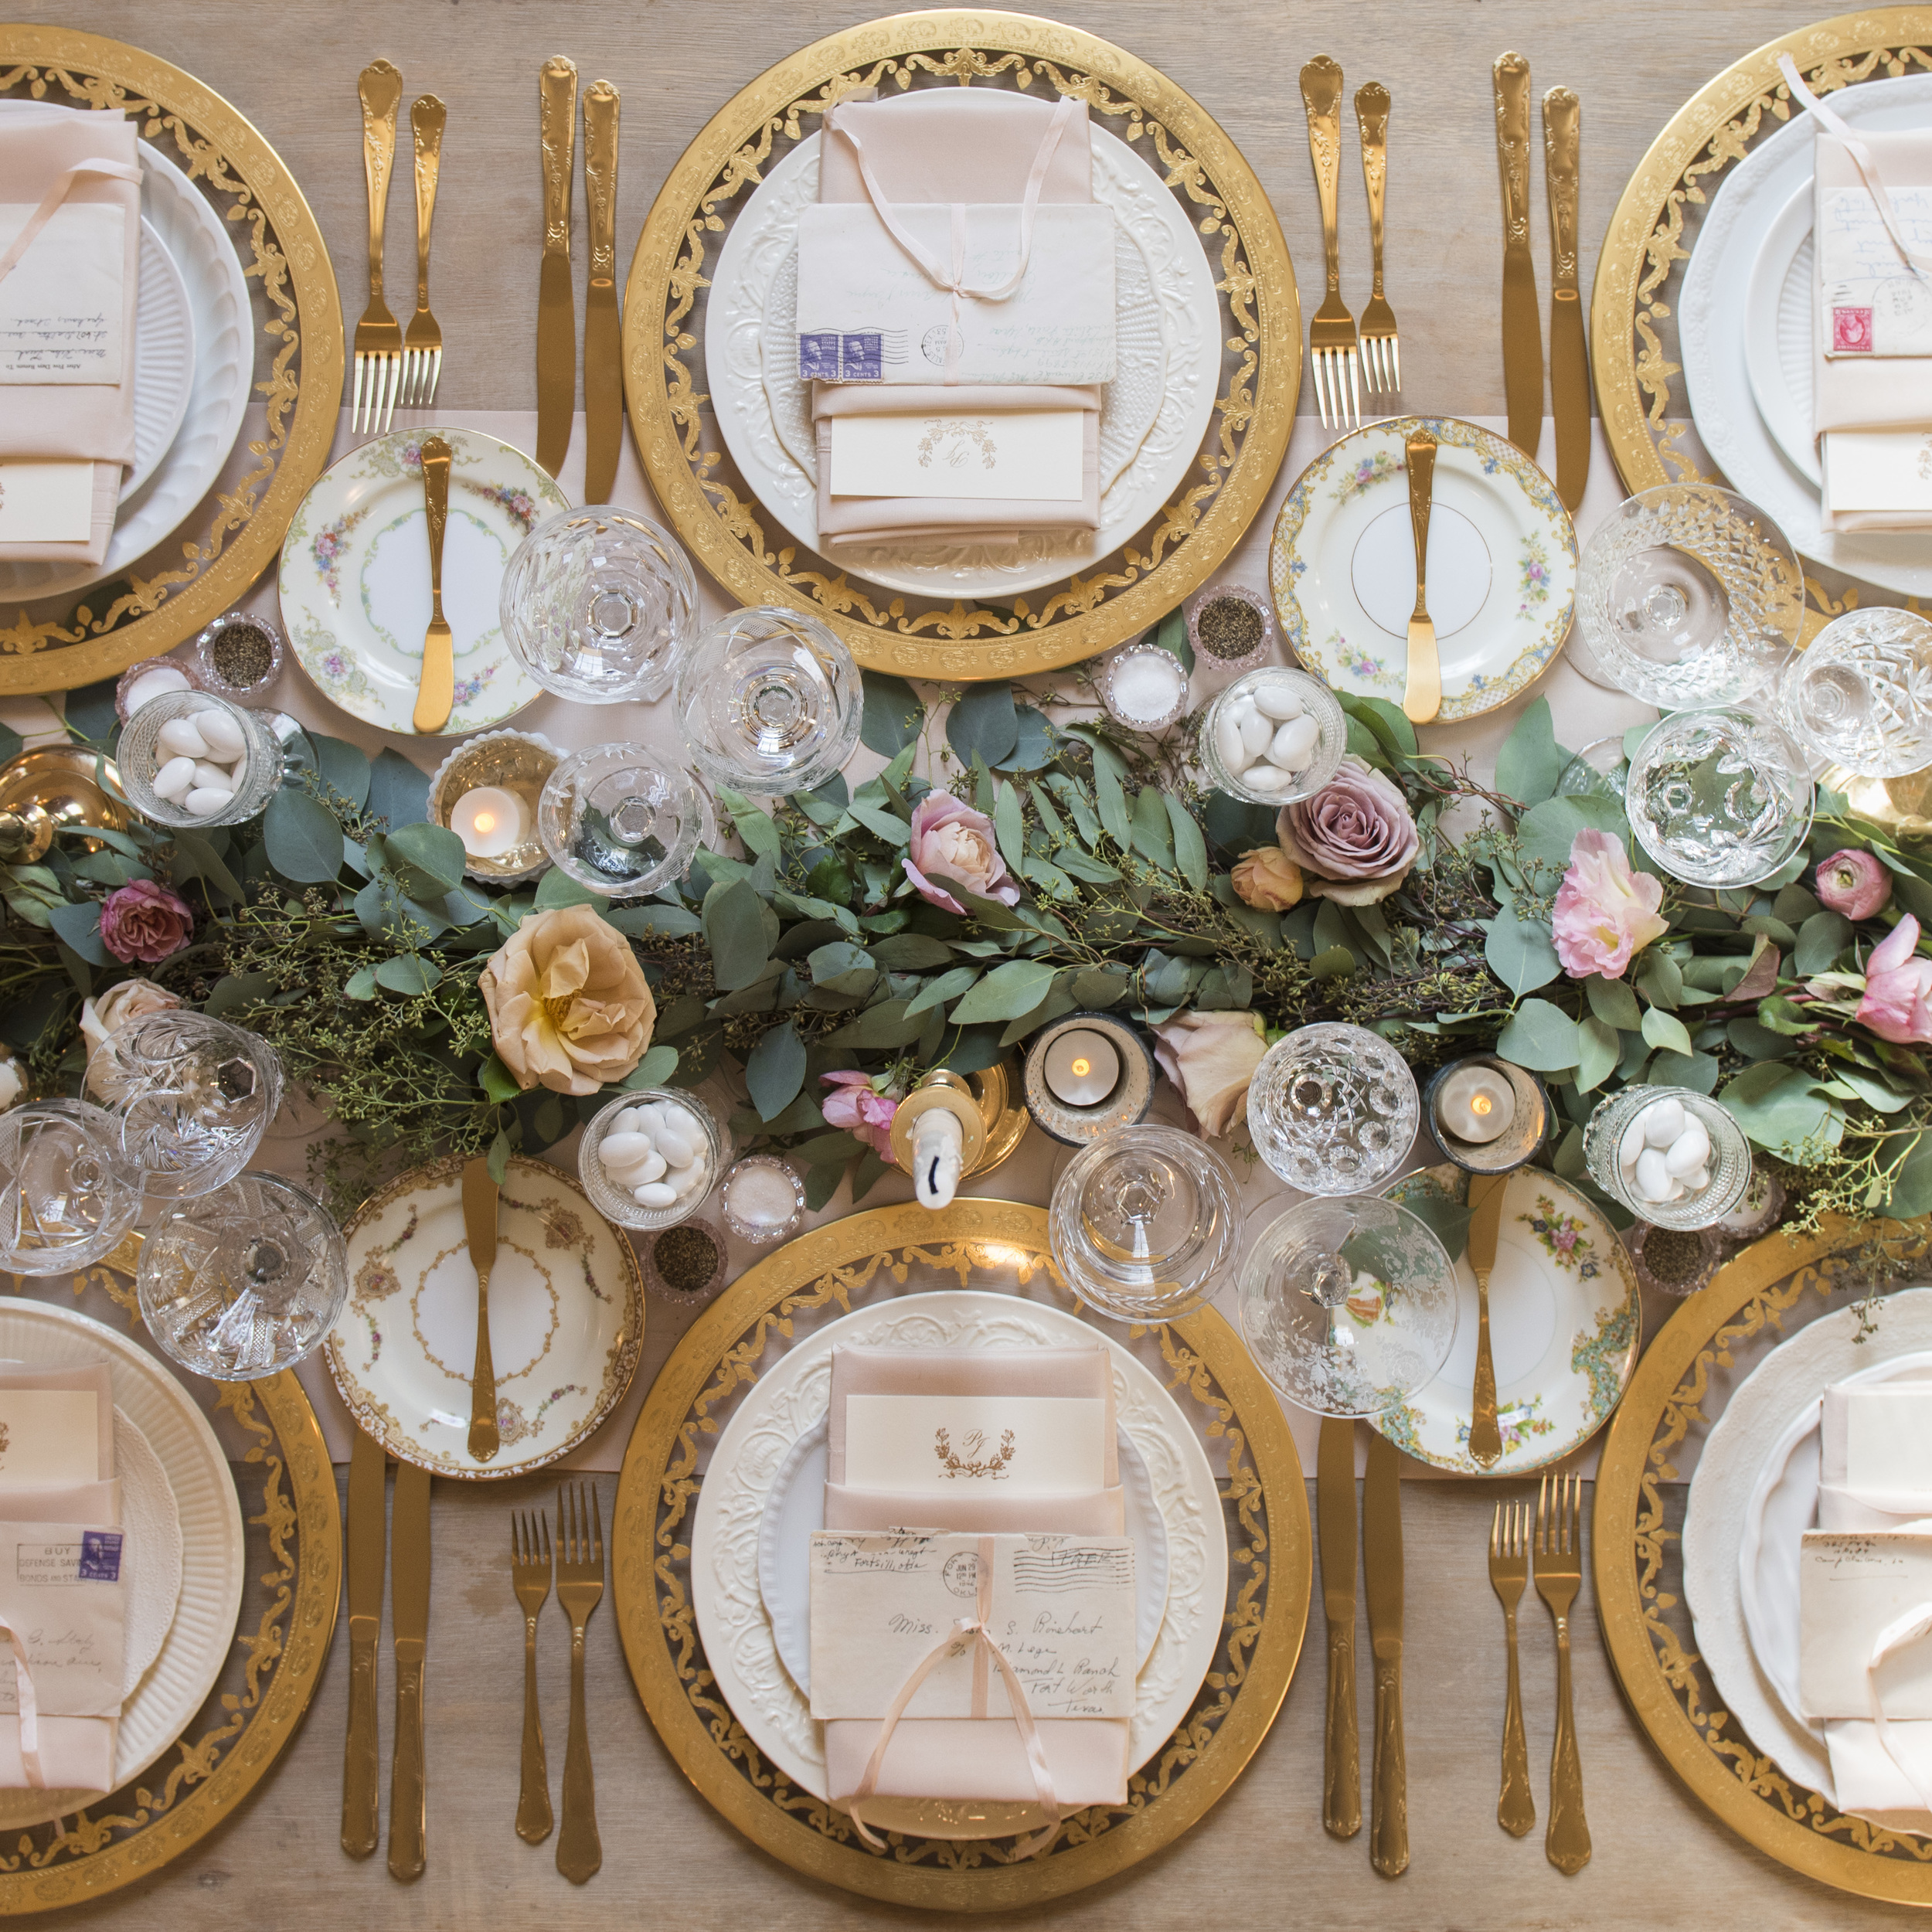 RENT: Versailles Glass Chargers in 24k Gold + White Collection Vintage China + Le Melange Vintage China + Chateau Flatware in Matte Gold + Vintage Cut Crystal Goblets + Early American Pressed Glass Goblets + Vintage Champagne Coupes + Pink Crystal Salt Cellars